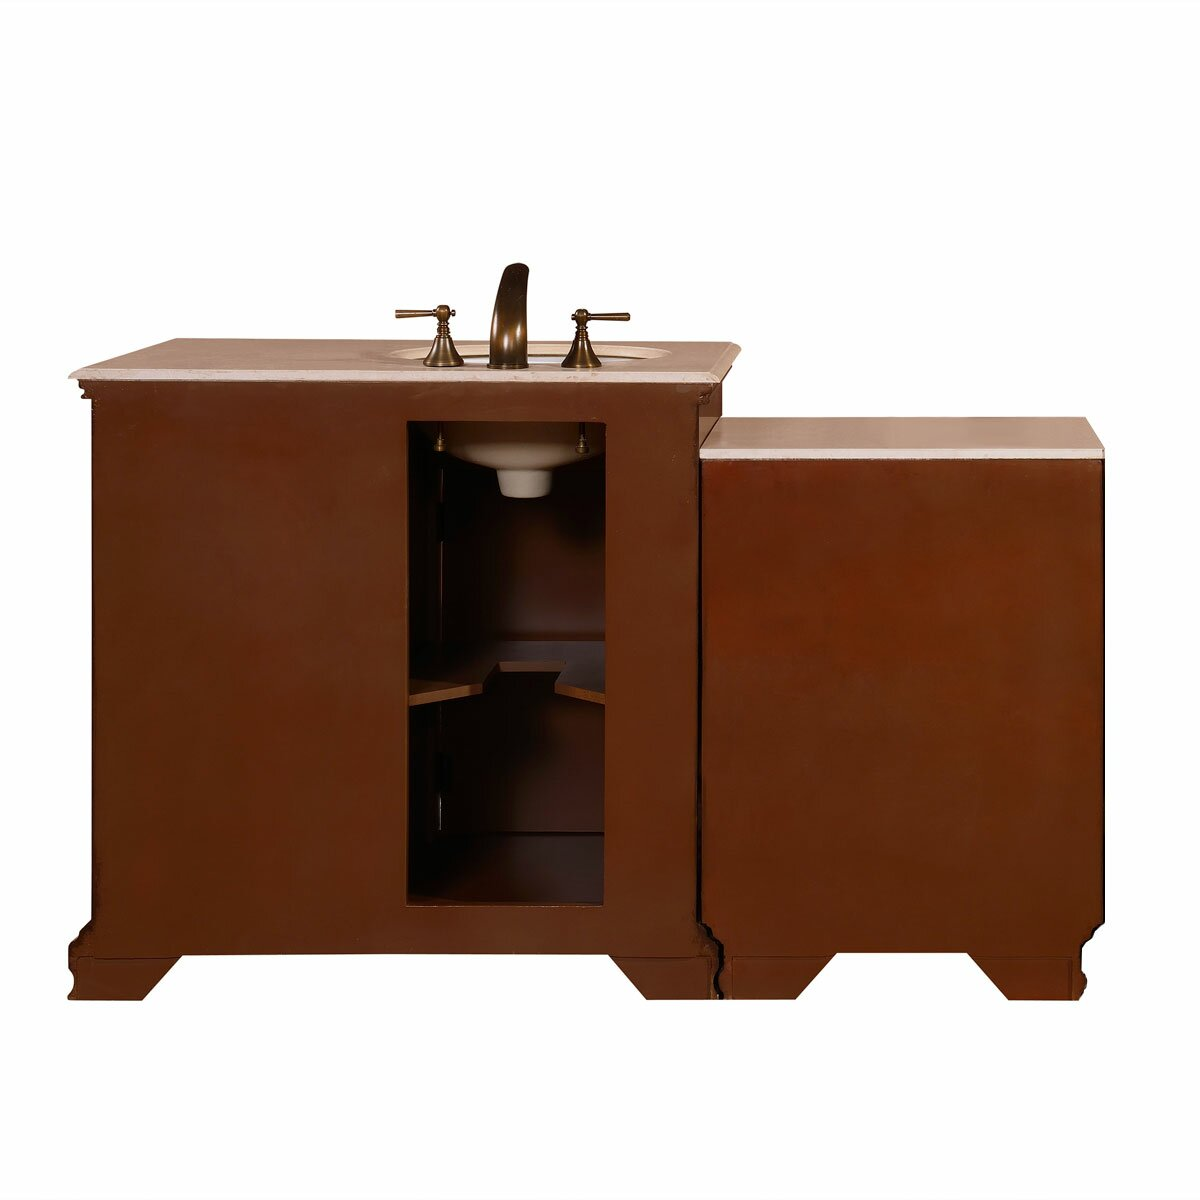 Silkroad exclusive 59 single sink cabinet bathroom vanity for Toilet sink cabinet